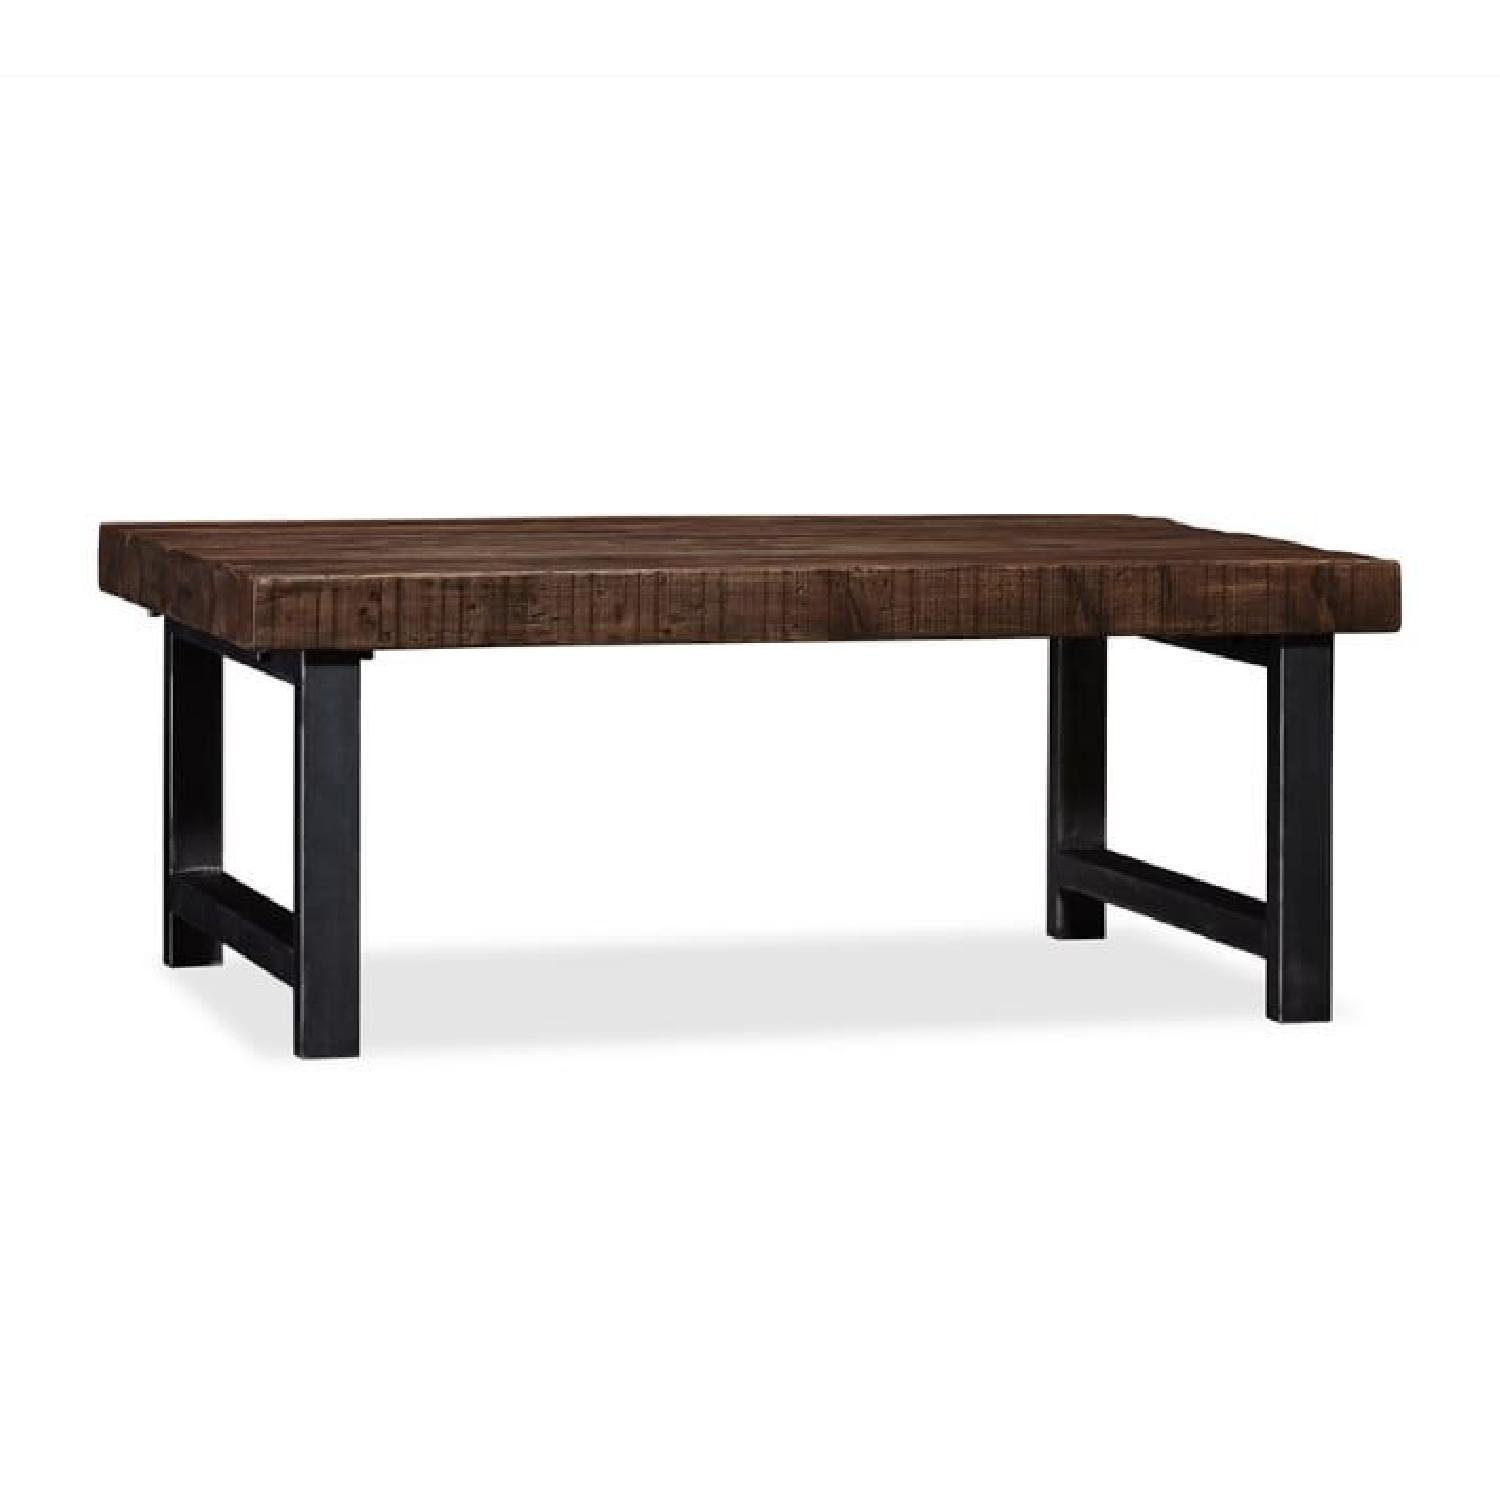 Pottery barn griffin reclaimed wood coffee table aptdeco pottery barn griffin reclaimed wood coffee table geotapseo Gallery